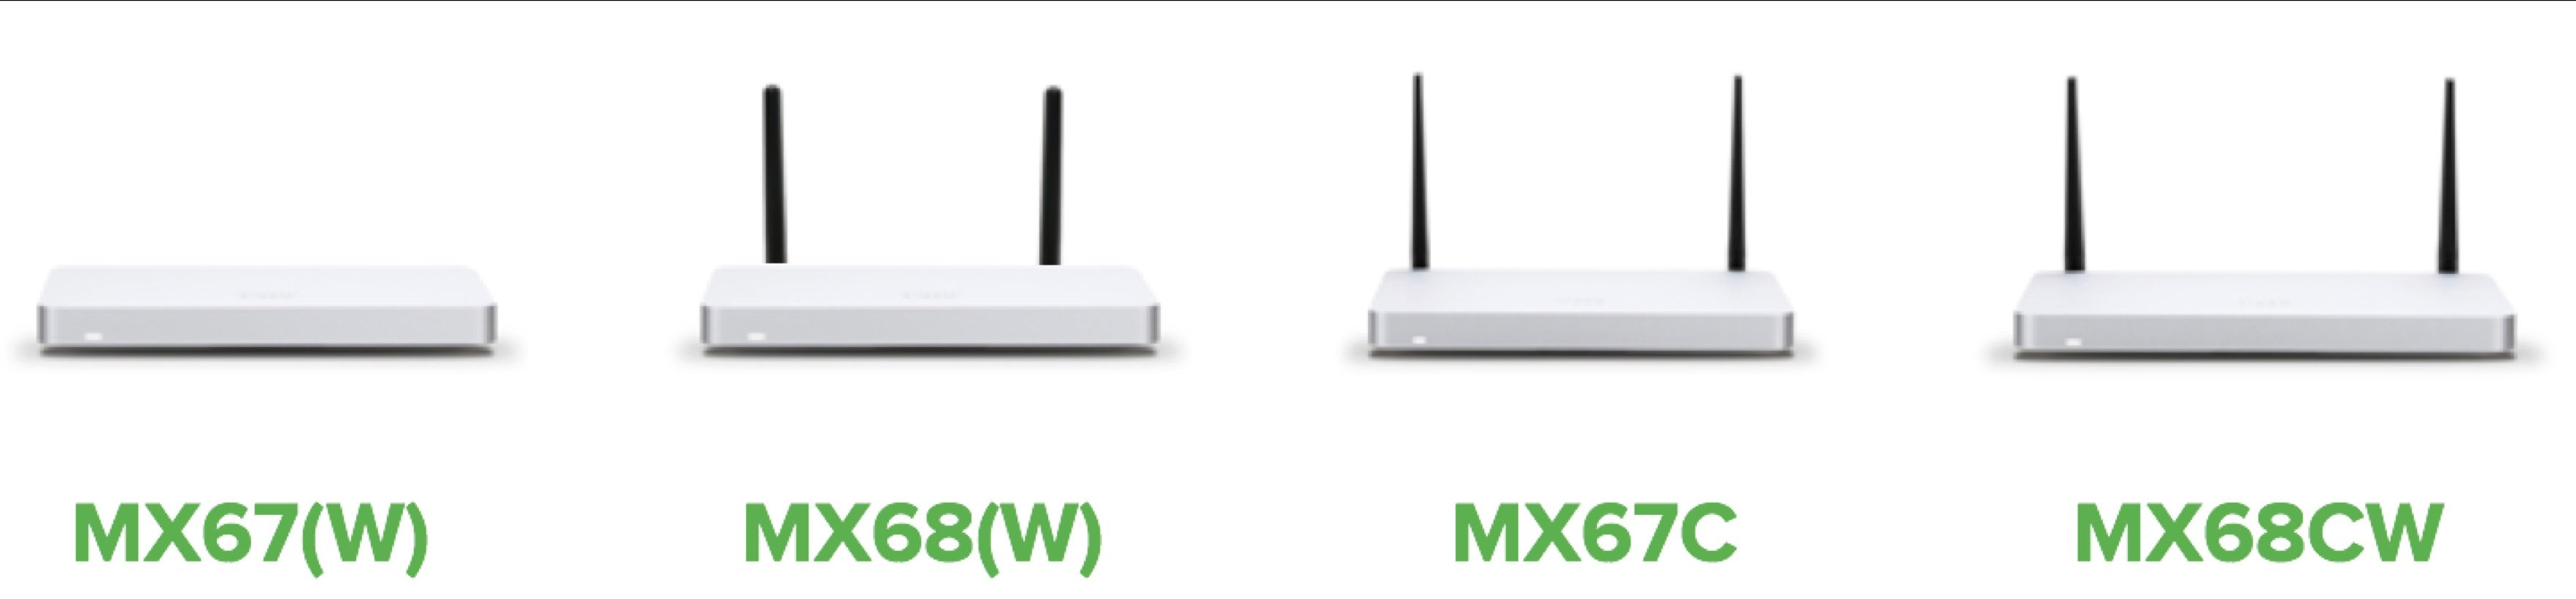 mx67 and mx68